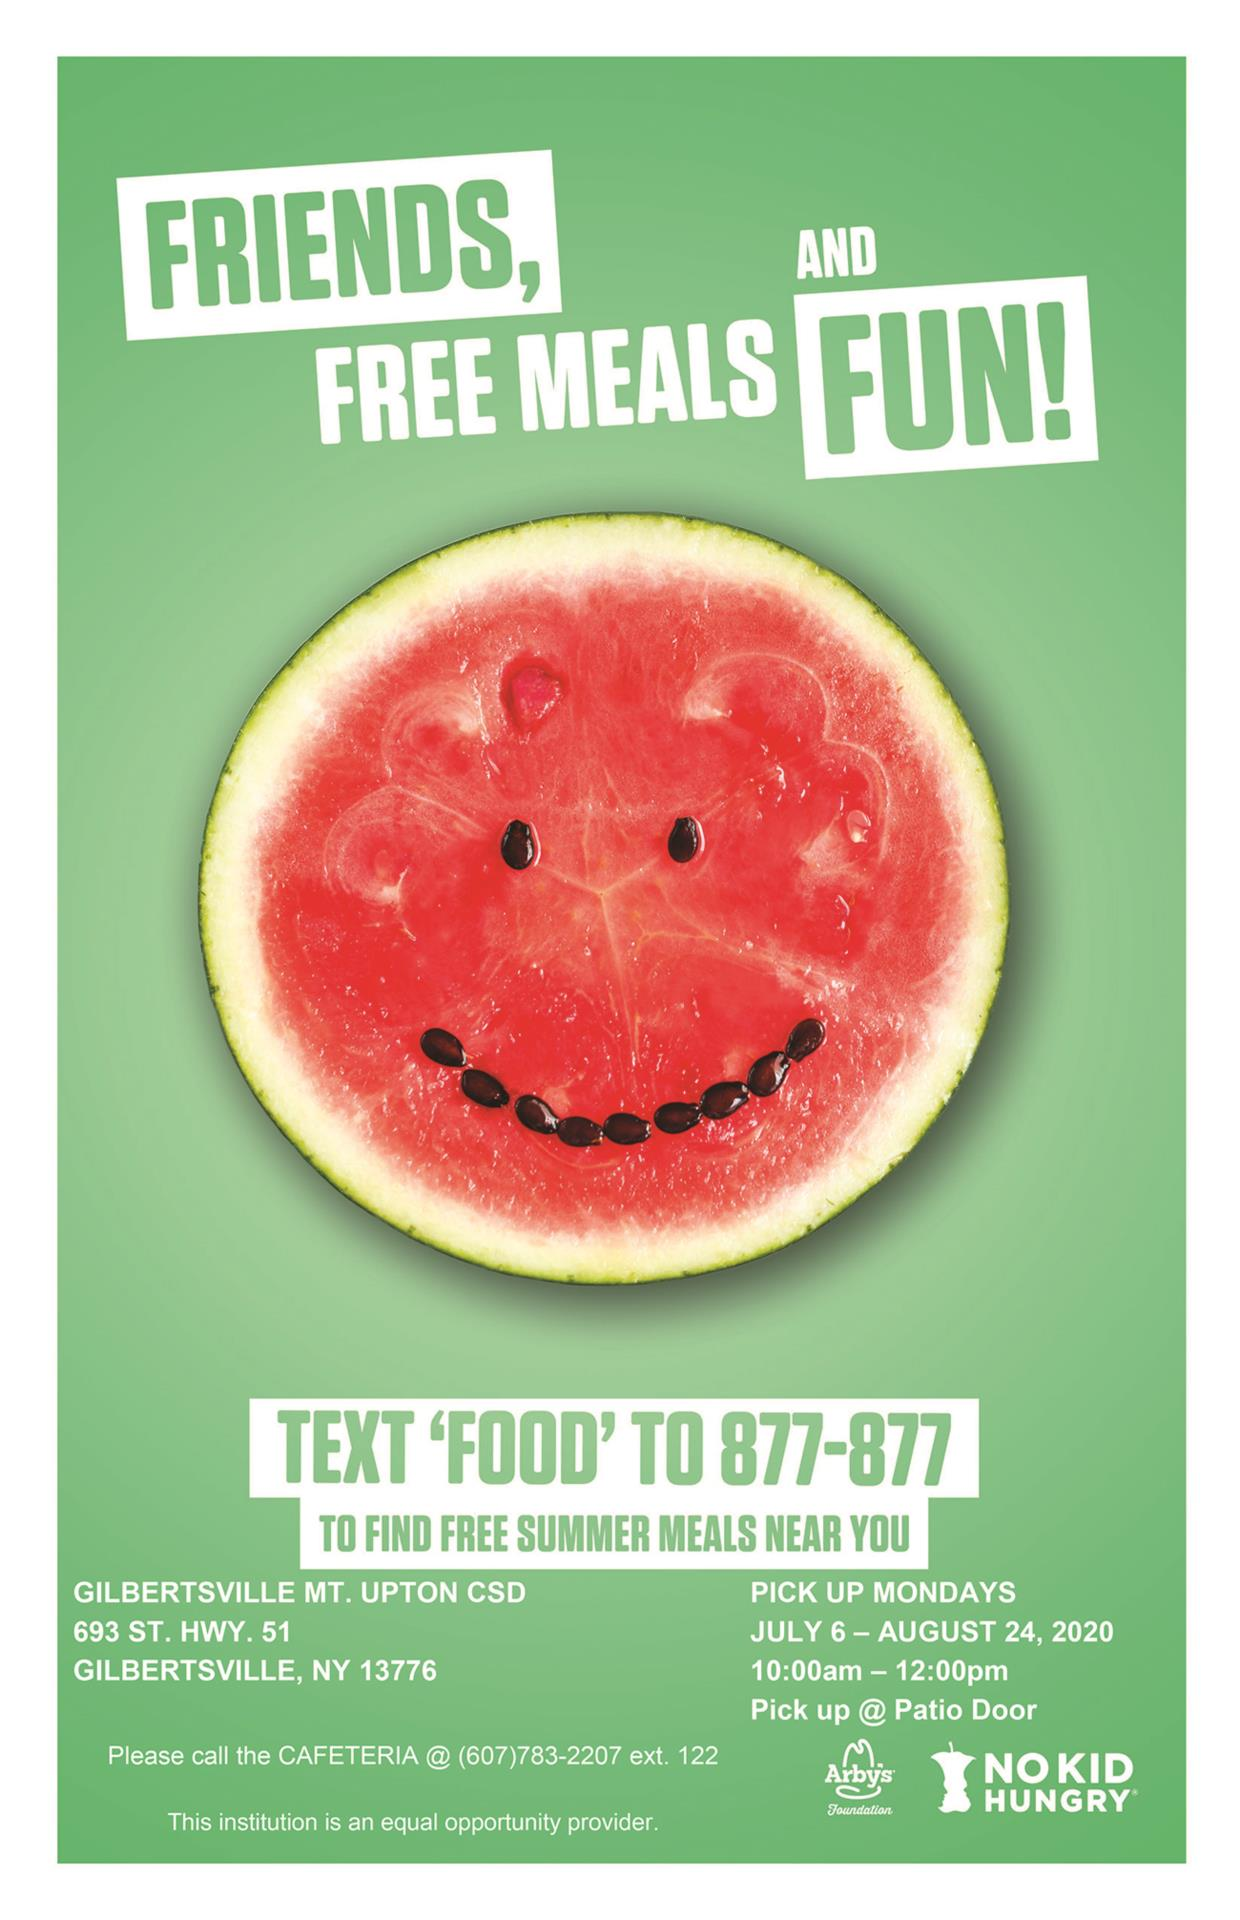 Free meals flyer with watermelon smiling (seeds)